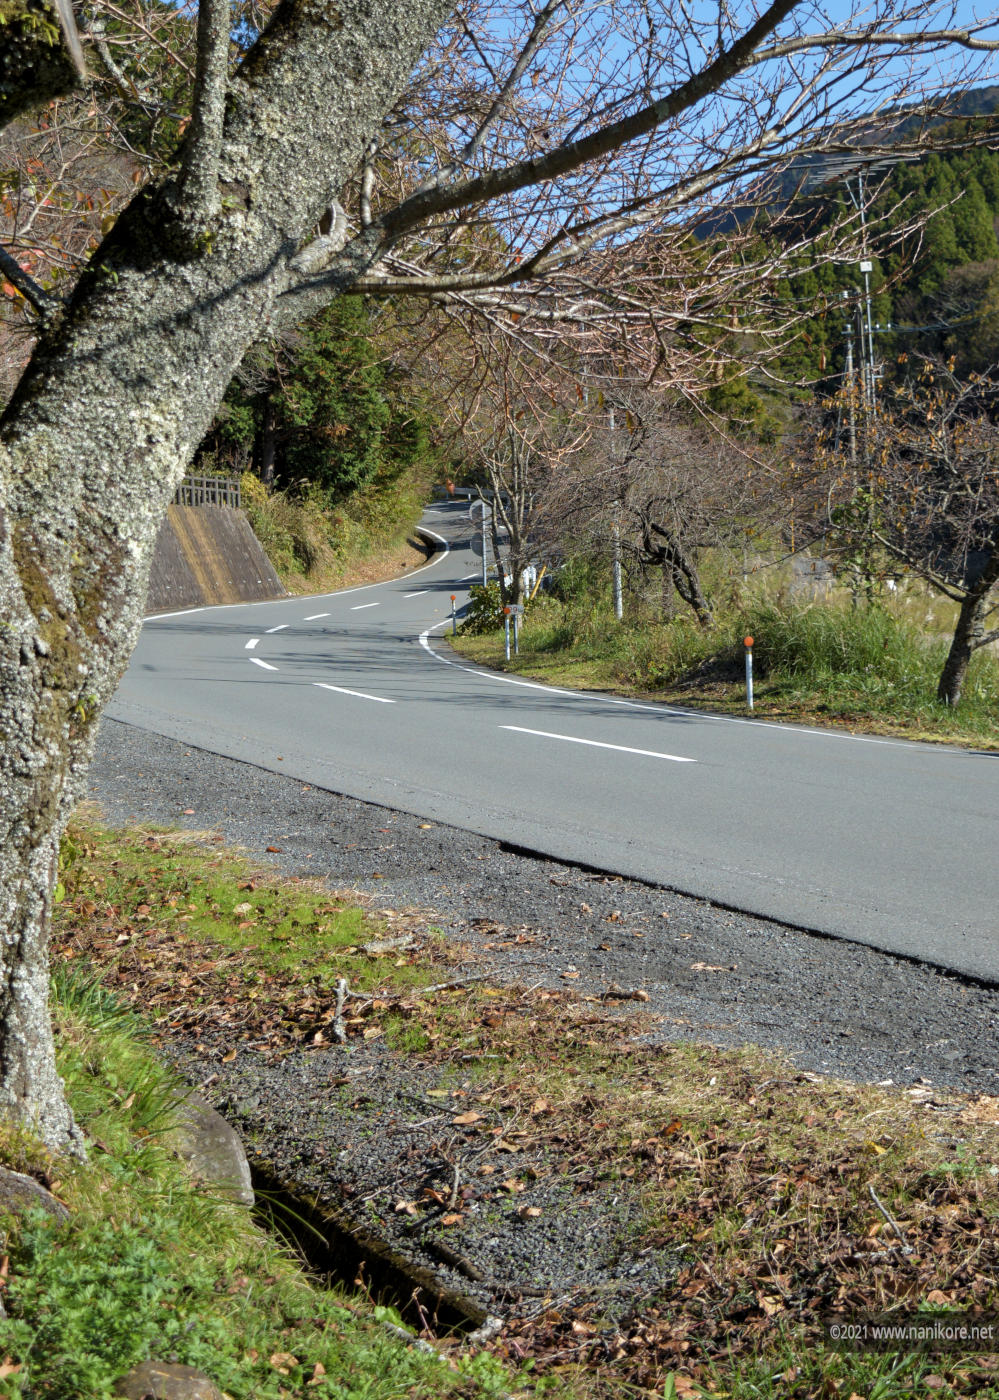 Curved roads near the farms of Izu